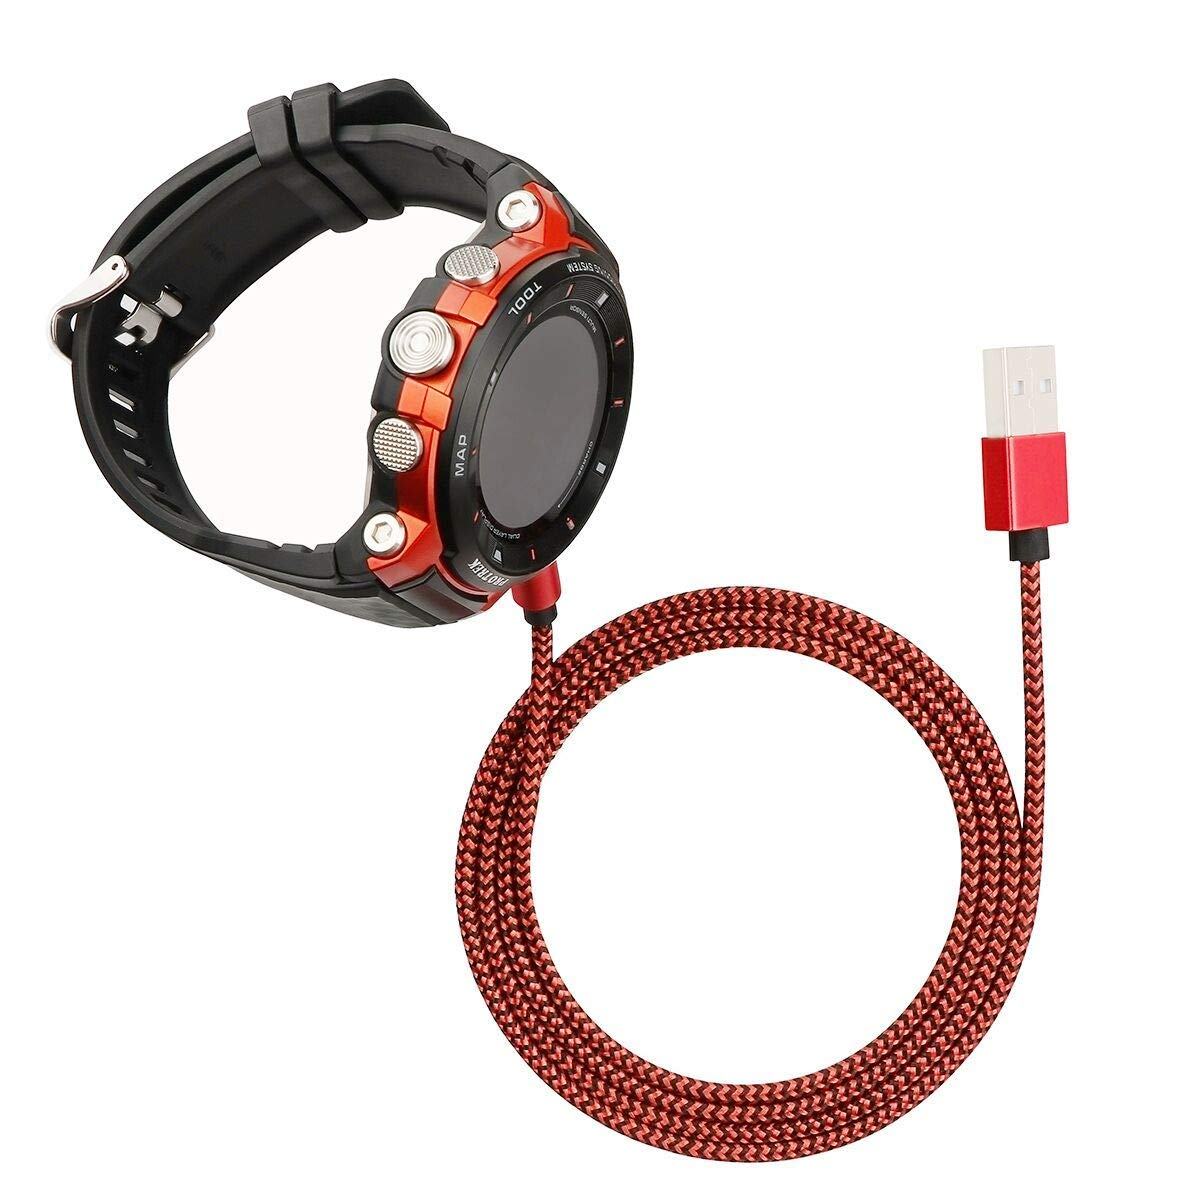 SEMILU Nylon Magnet Charging Cable Compatible with Outdoor Smart Watch WSD-F30,WSD-F20,WSD-F10